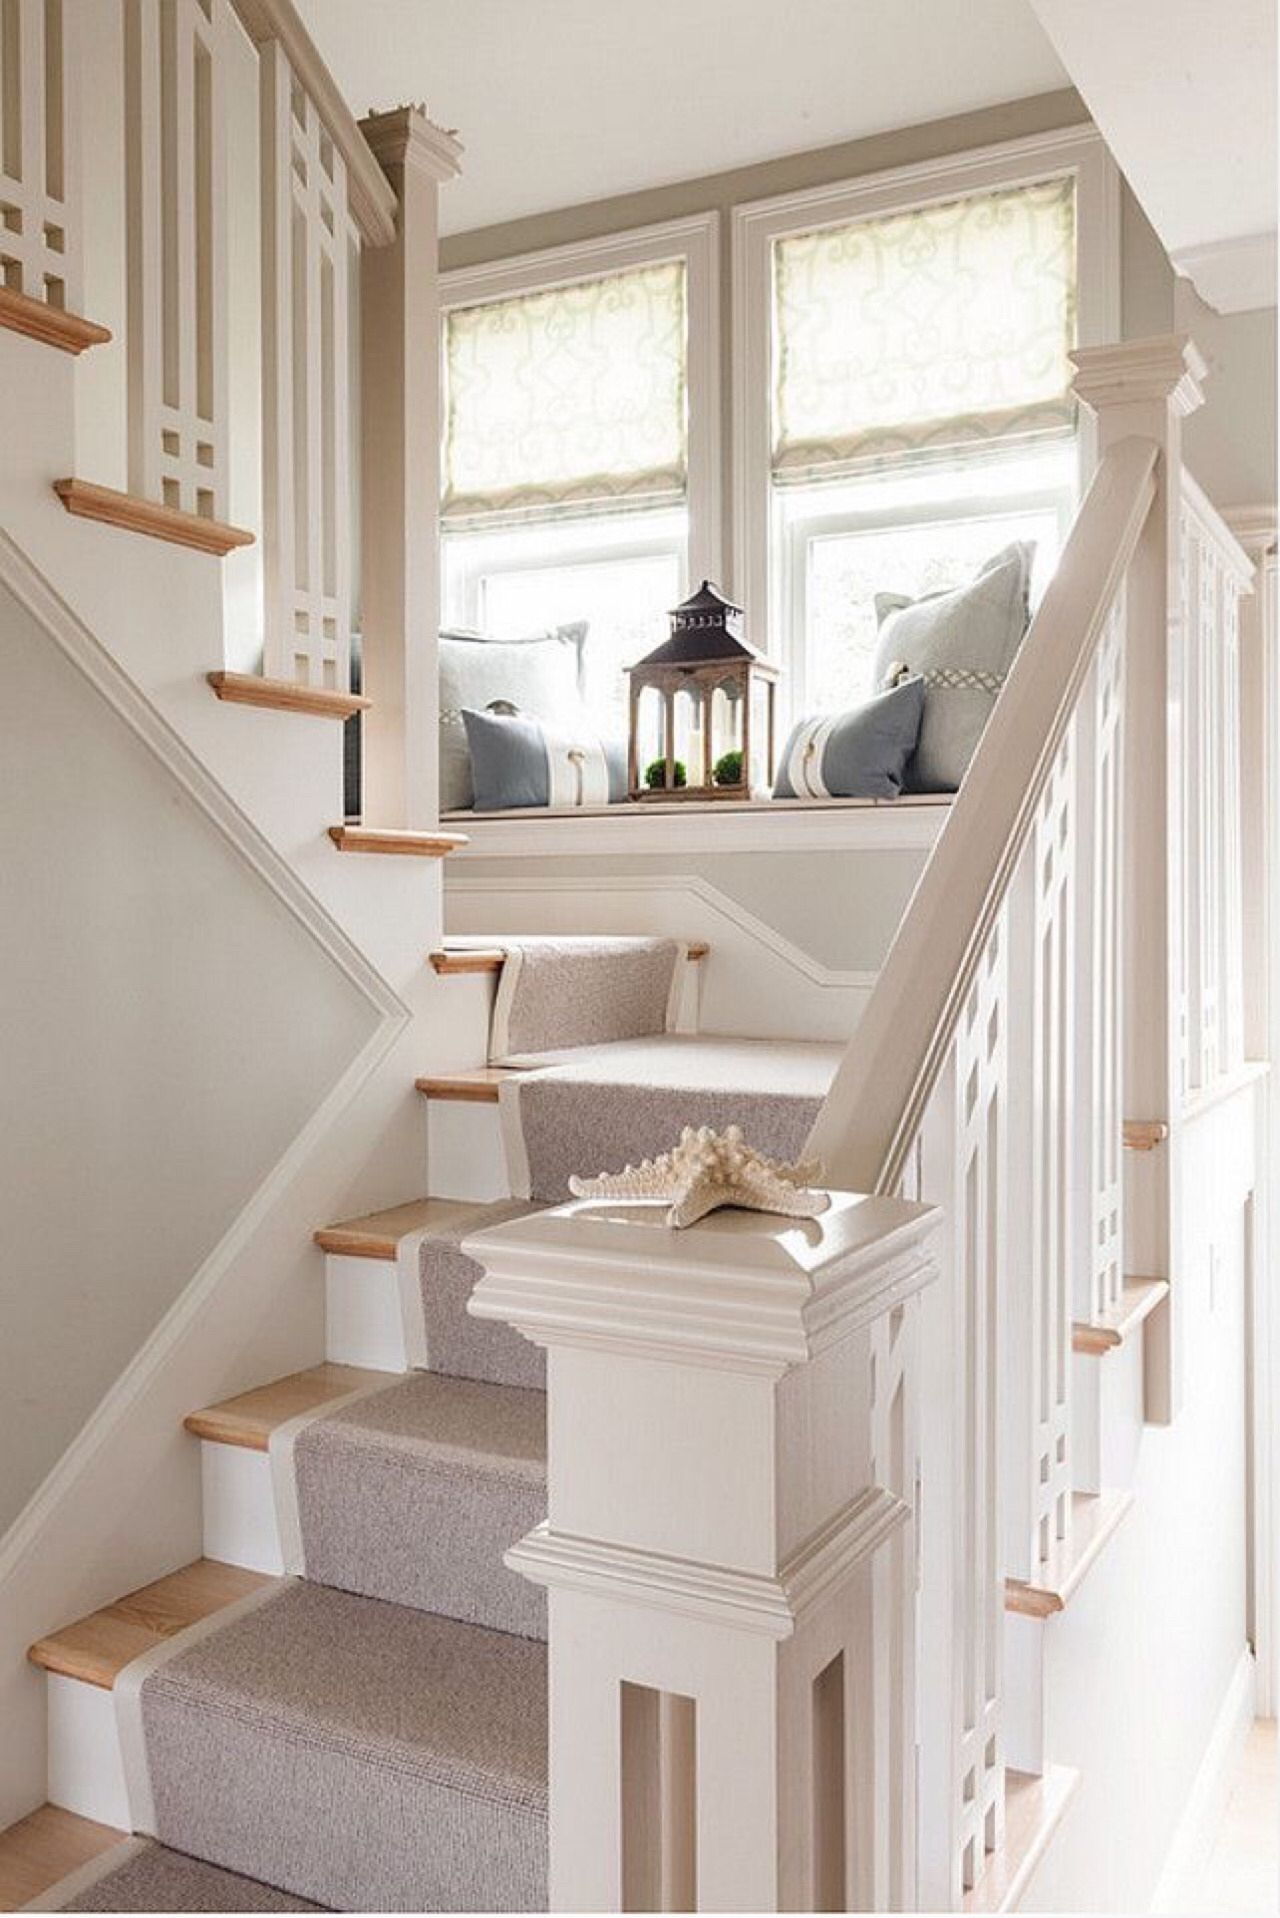 Home treppen design-ideen pin by miesha haynes on design ideas  pinterest  staircases house